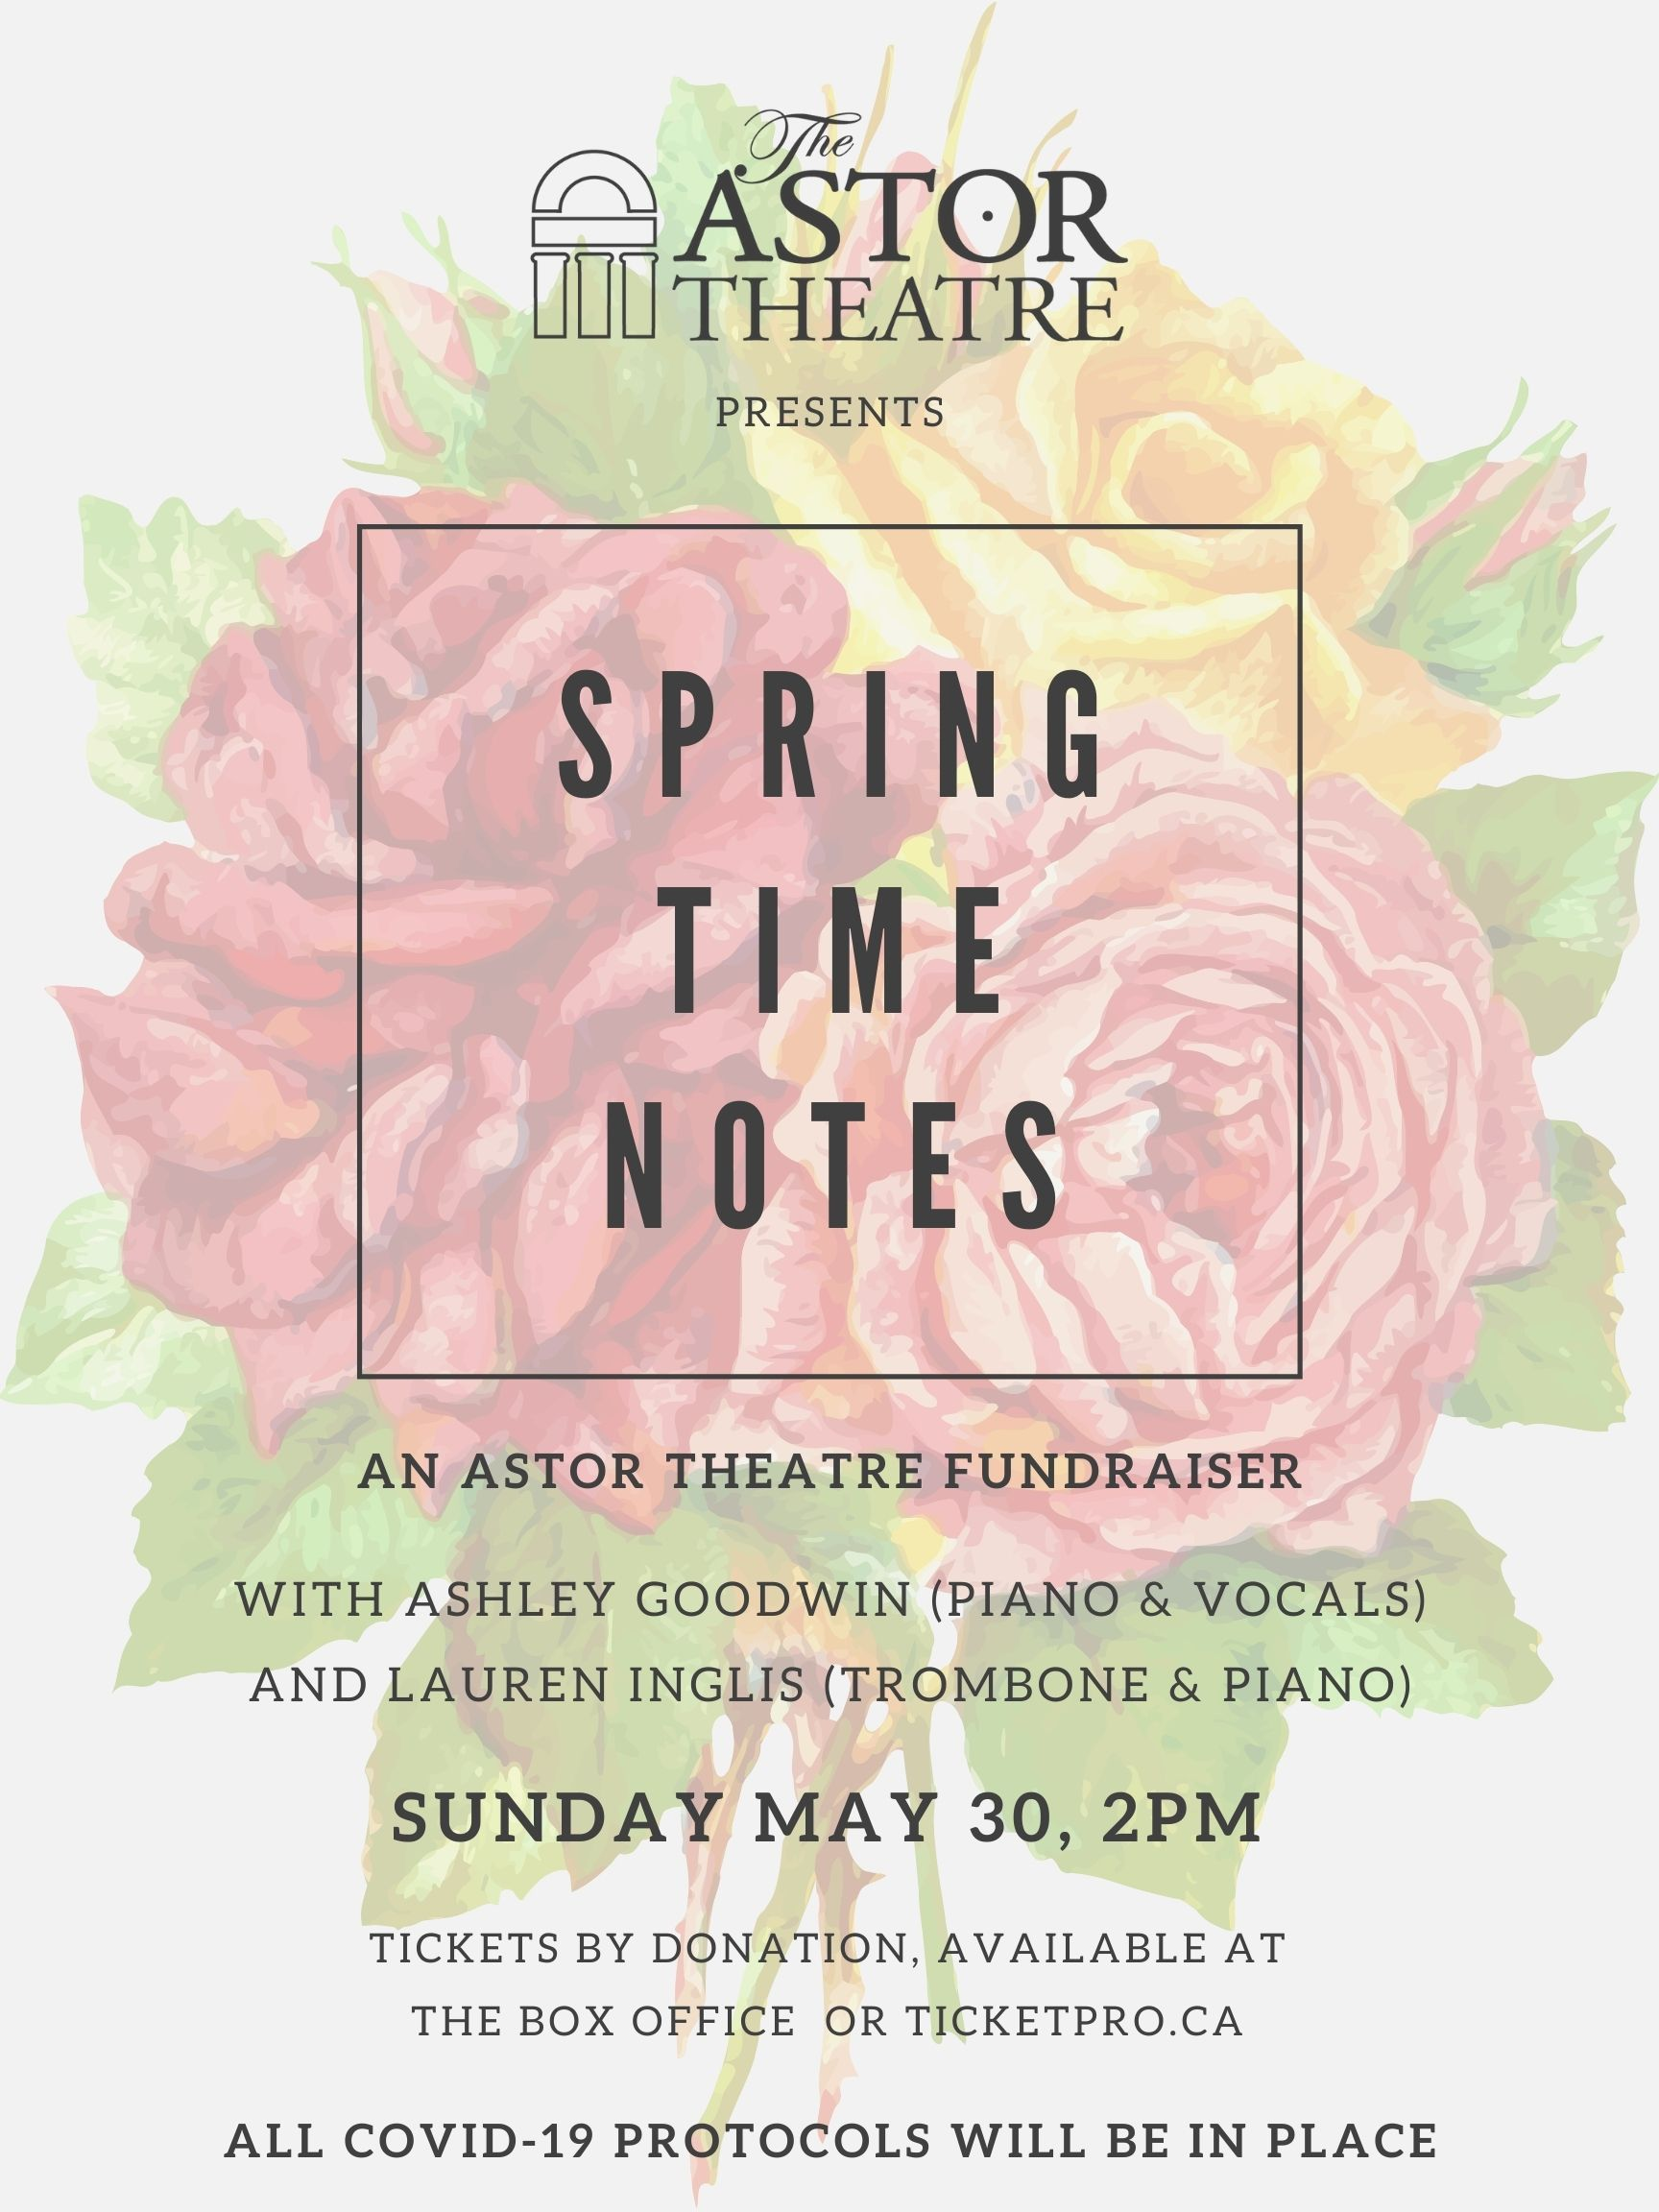 Springtime Notes - An Astor Theatre Fundraiser @ Astor Theatre